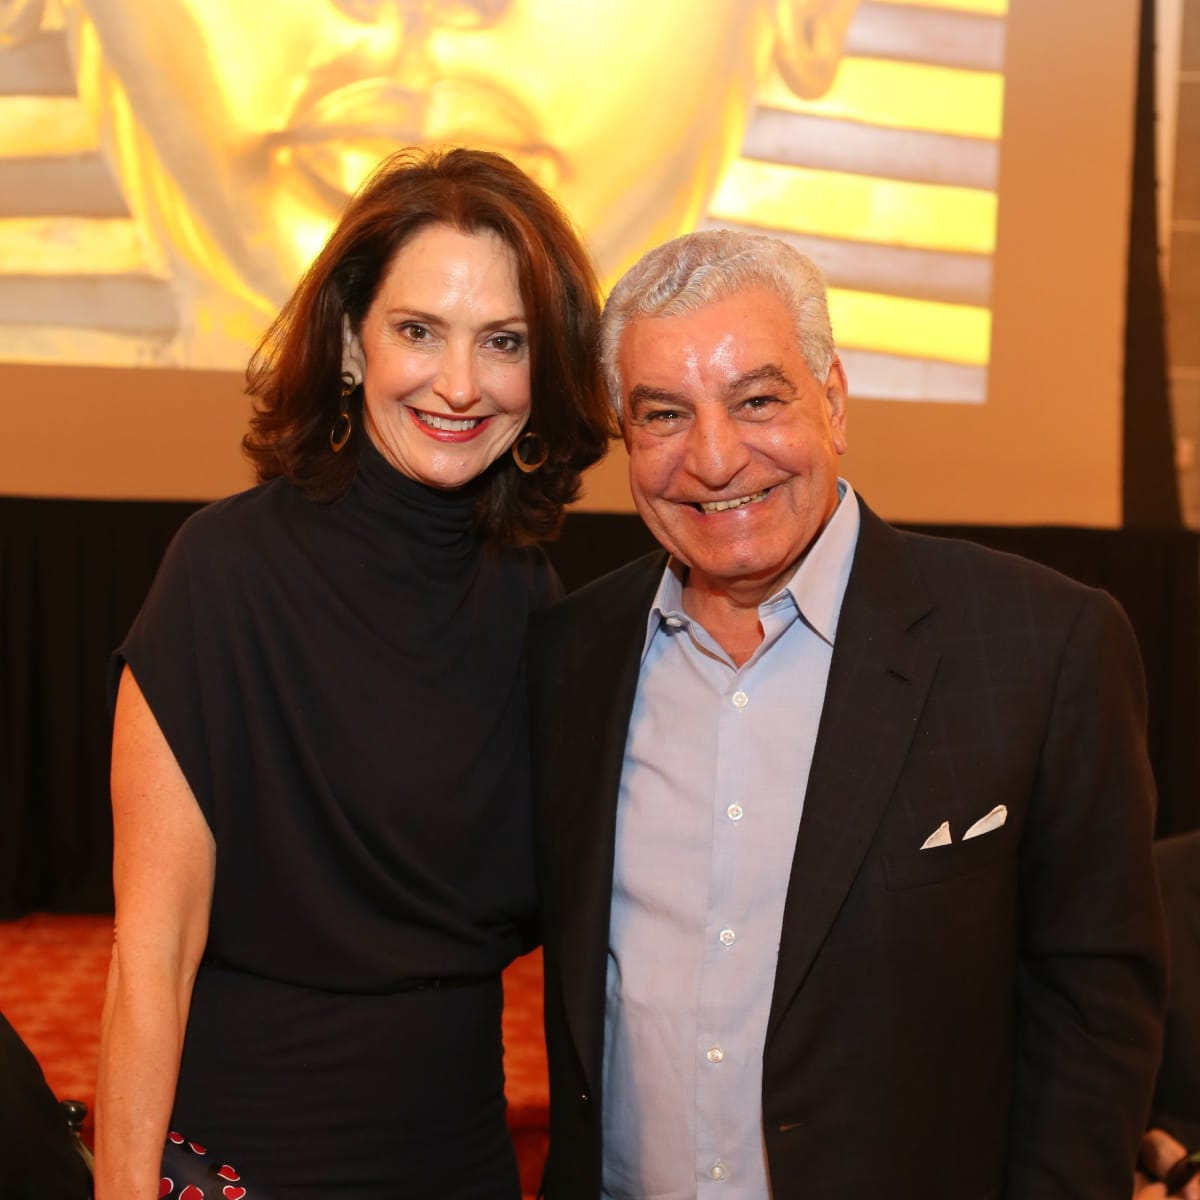 News, Shelby, Houston Museum of Natural Science Luncheon, Oct. 2015, Laurie Morian and Zahi Hawass